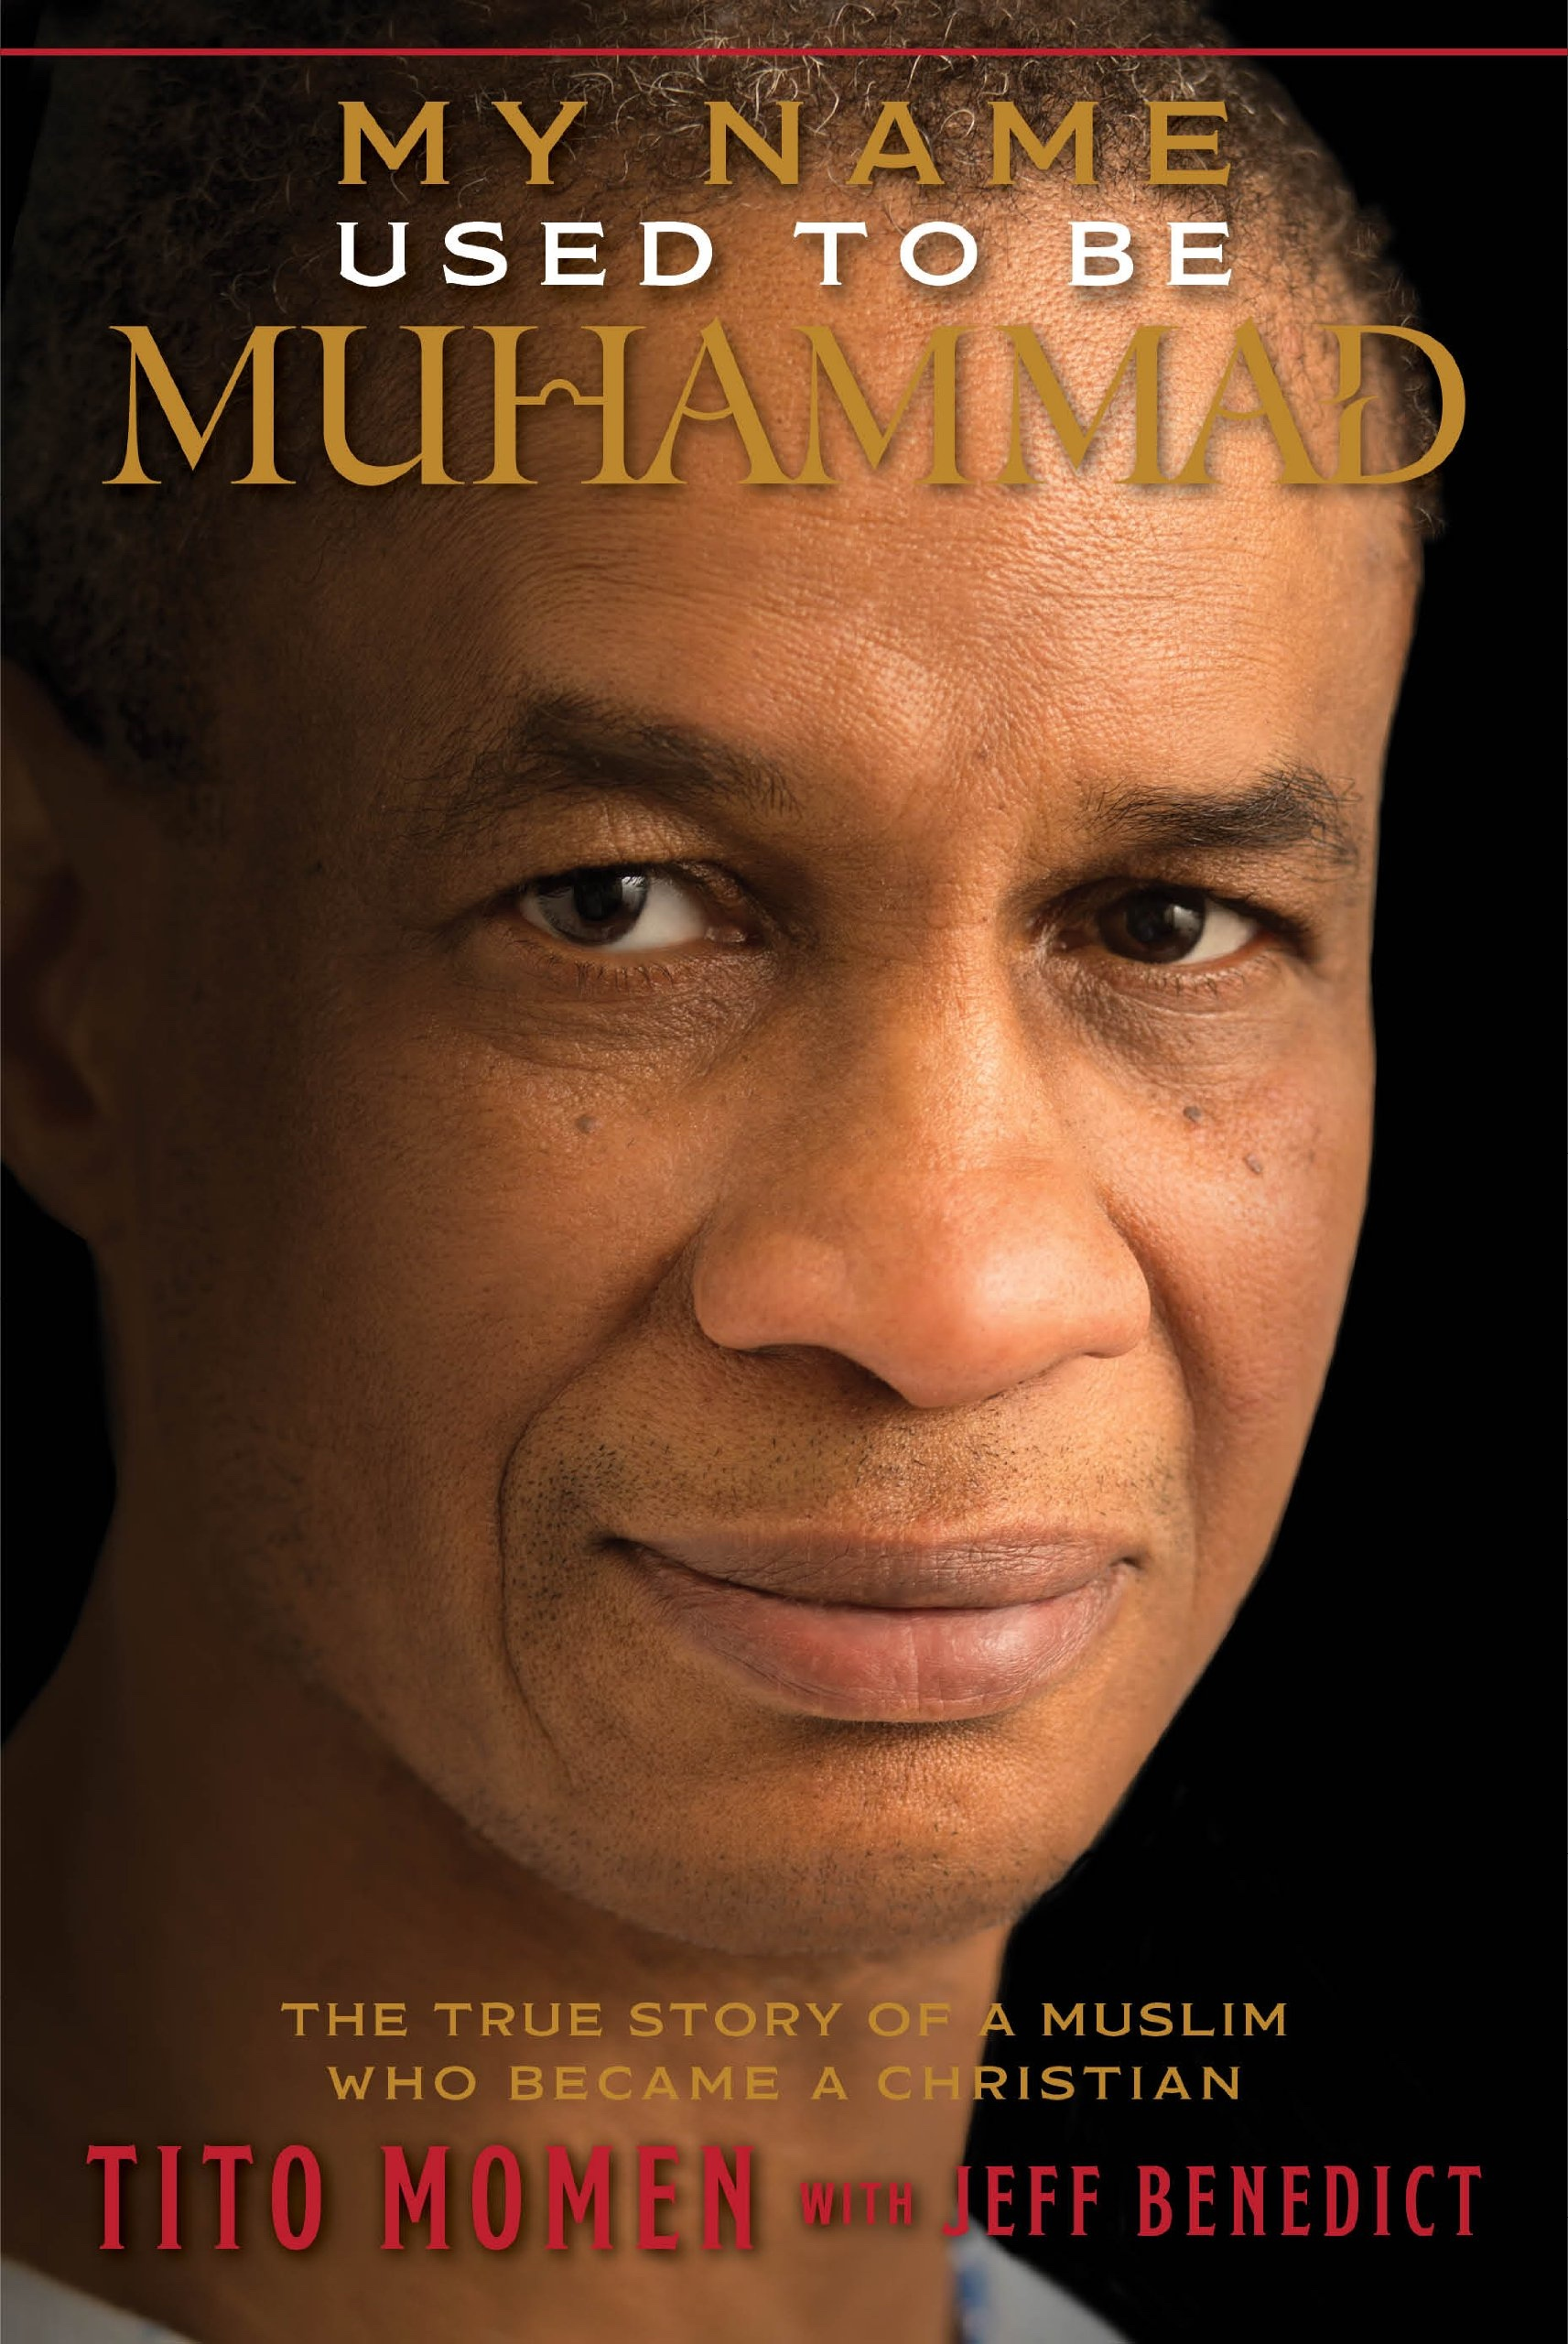 Image for My Name Used To Be Muhammad -  A True Story of a Muslim Who Became a Christian